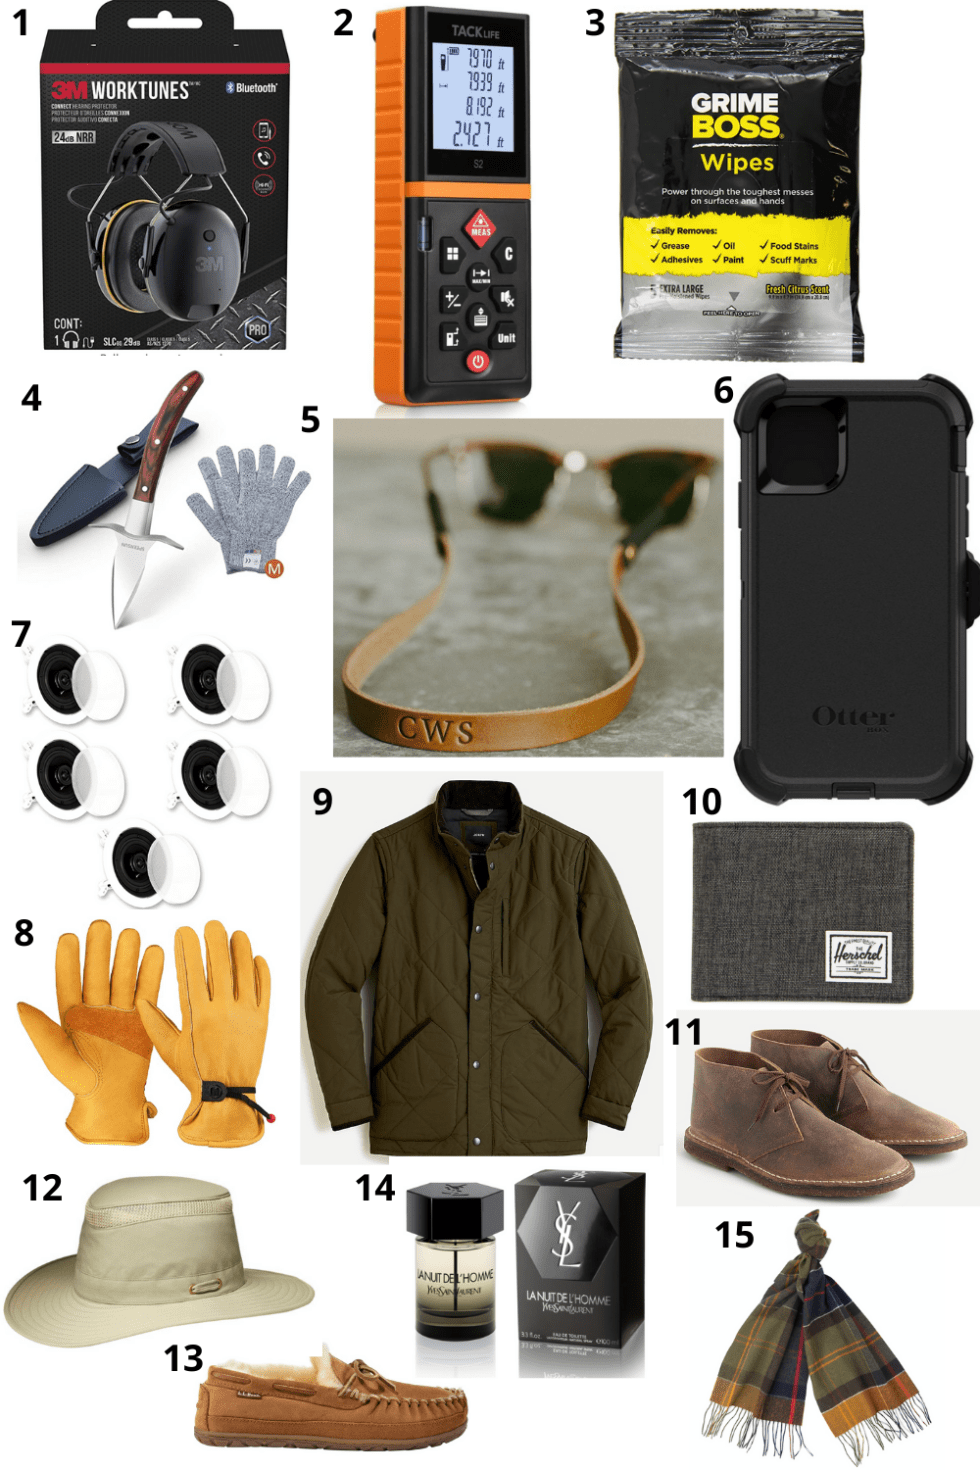 The Ultimate Holiday Gift Guide for Him: 15 Christmas Gifts He'll Love - I'm Fixin' To - @mbg0112 | Holiday Gift Guide for Him by popular NC life and style blog, I'm Fixin' To: collage image of Worktunes headphones, Grime Boss wipes, phone case, moccasin slippers, YSL cologne, plaid scarf, leather gloves,Tacklife Advanced Laser Measure,Theater Solutions In Ceiling Surround Sound Home Theater, J. Crew MacAlister boots in leather,Tilley LTM6 Airflo Broad Brim Hat,Monogrammed Sunglass Strap, quilted jacket, and Oyster Shucking Knife.